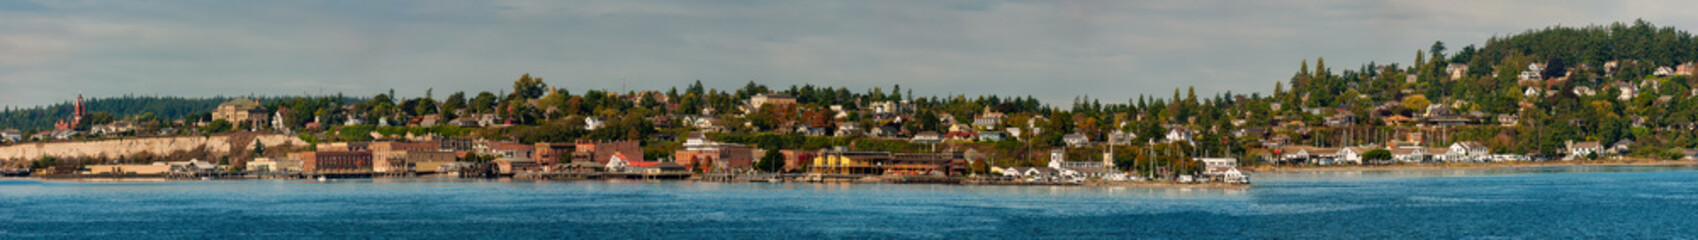 Wall Mural - Panoramic View of Historic Port Townsend, Washington. Port Townsend is steeped in fascinating history, from its  Native American roots to its Victorian architecture and maritime legacy.